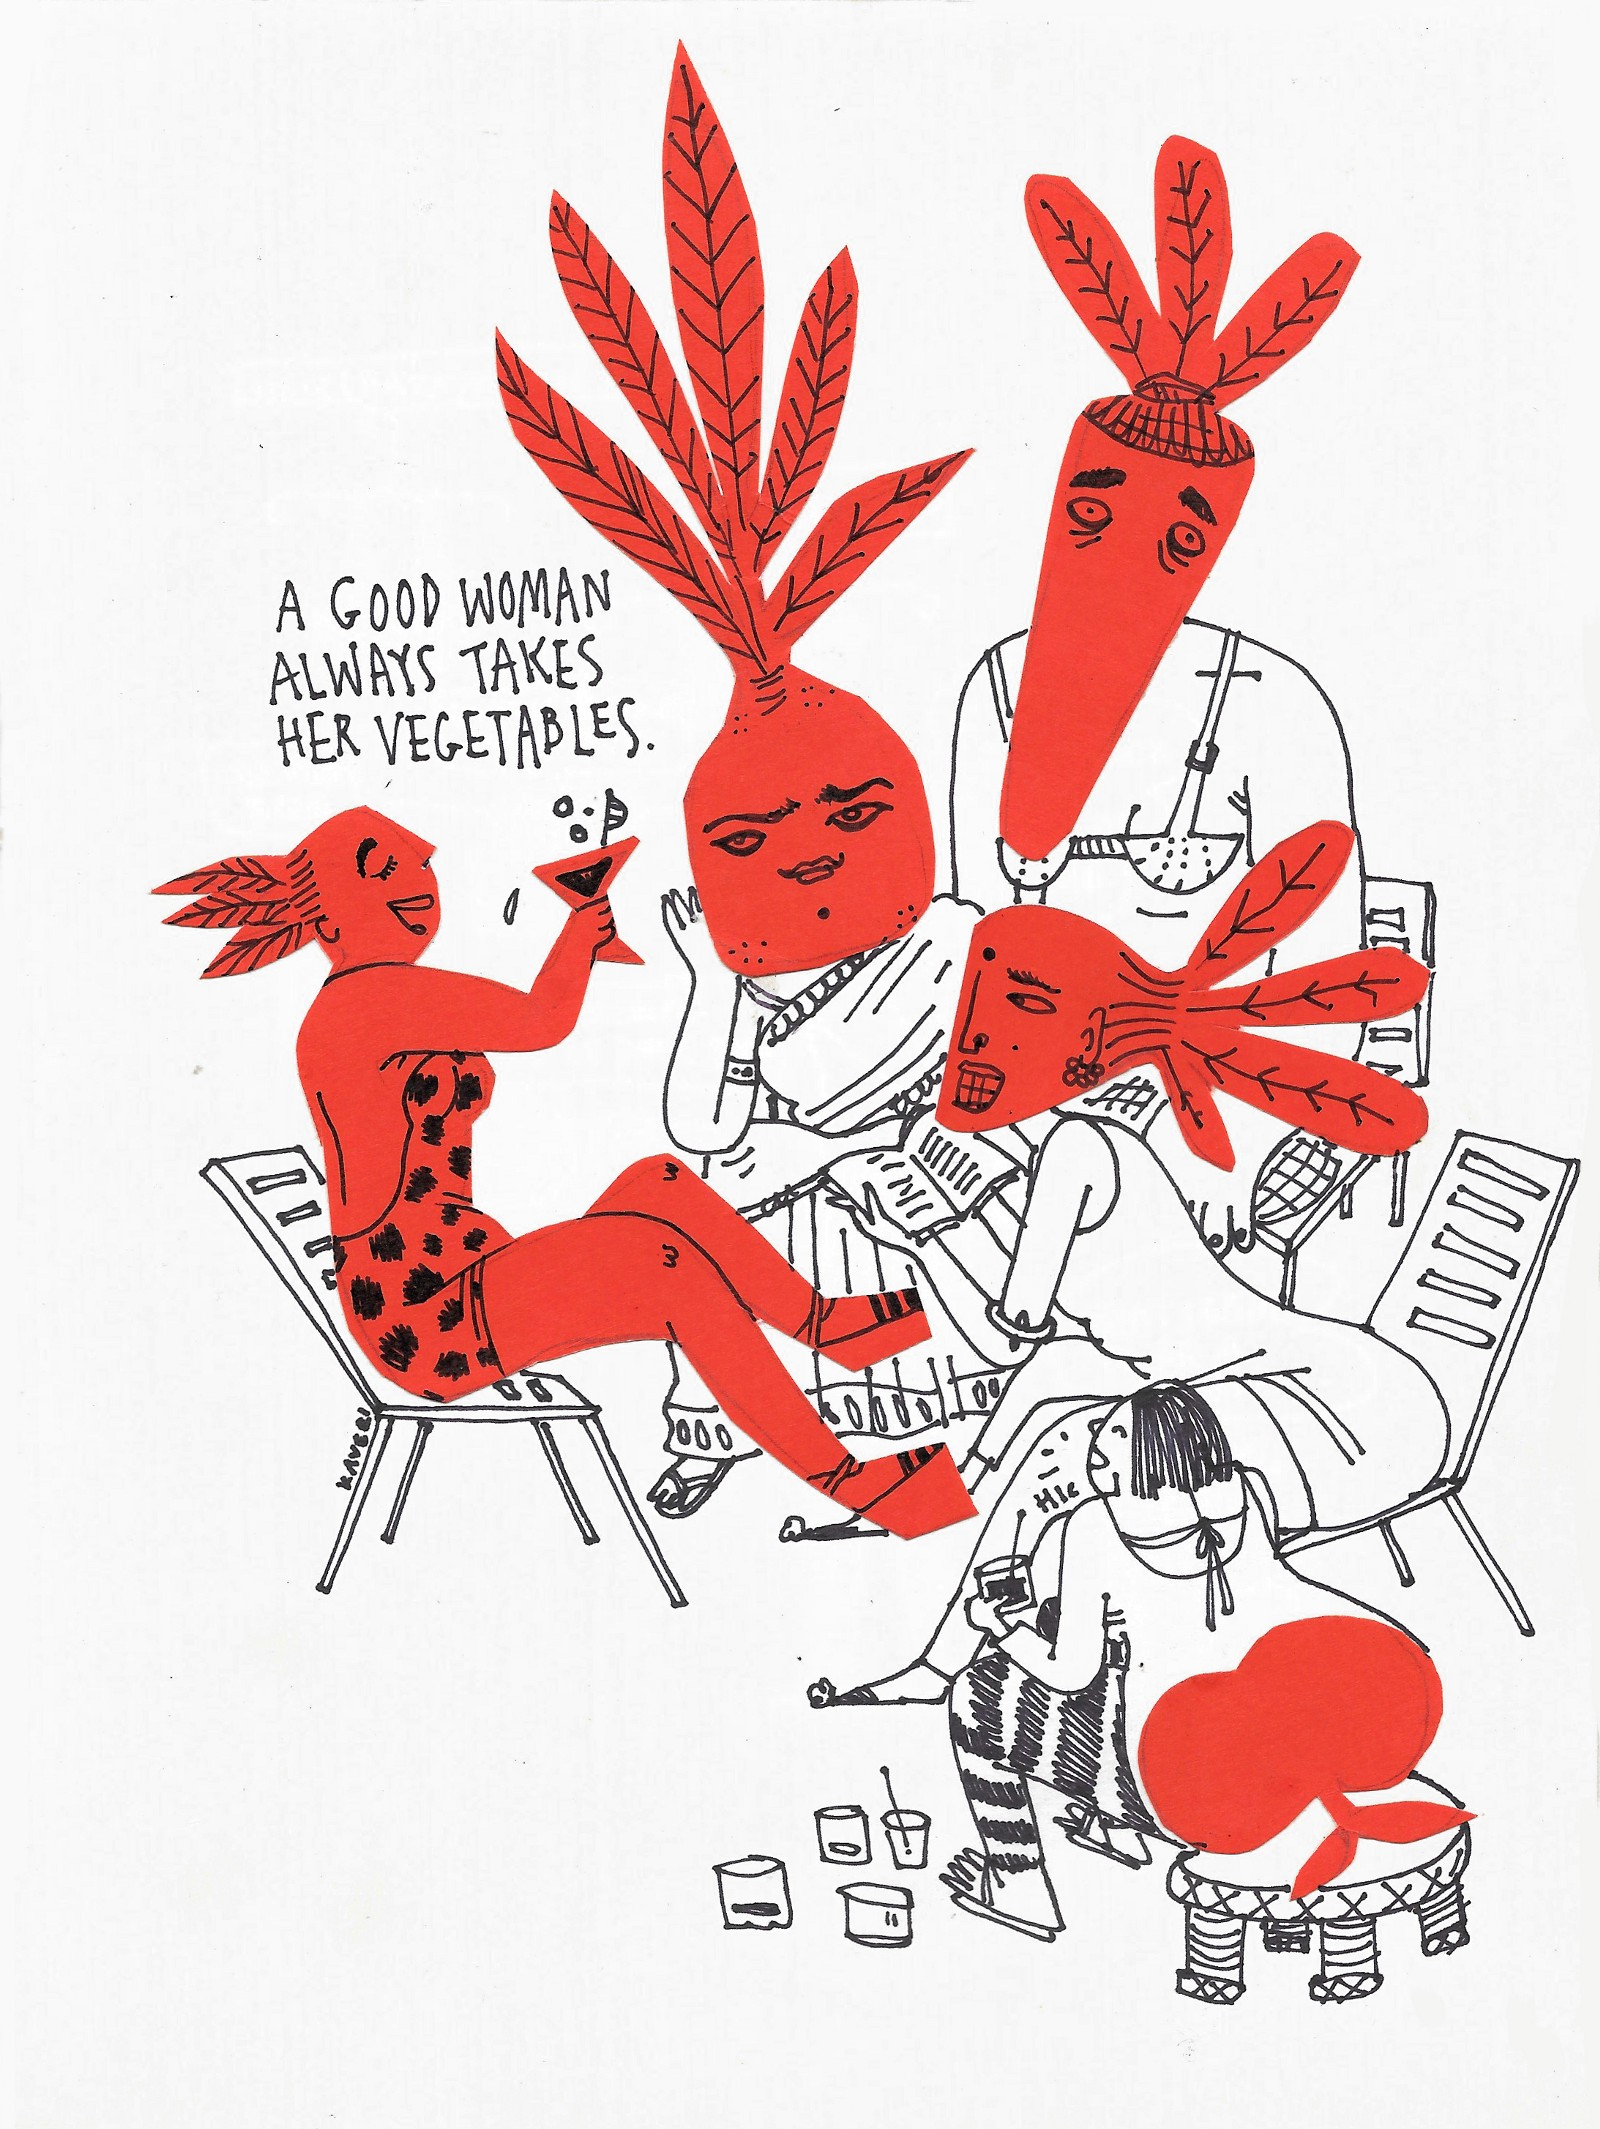 Kaveri Gopalakrishnan's  Misfits  is a series of standalone short comics offering a humorous insight into the societal expectations that are placed on women's bodies and appearances.